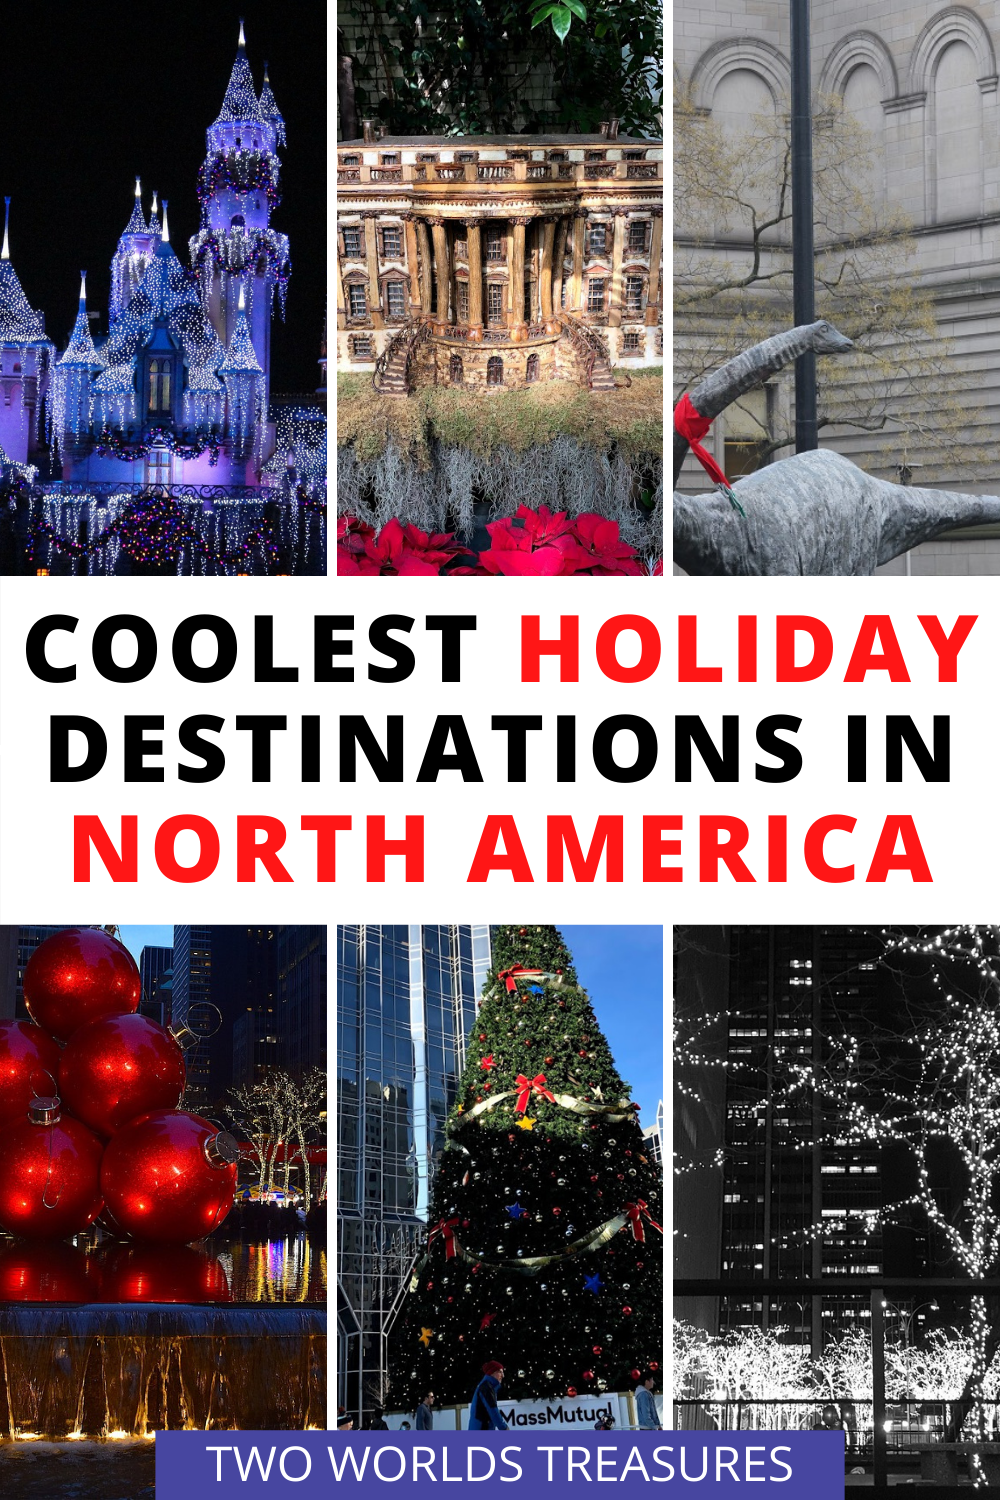 The Best Christmas Vacations In North America In 2020 North America Travel Destinations Best Christmas Vacations North America Travel